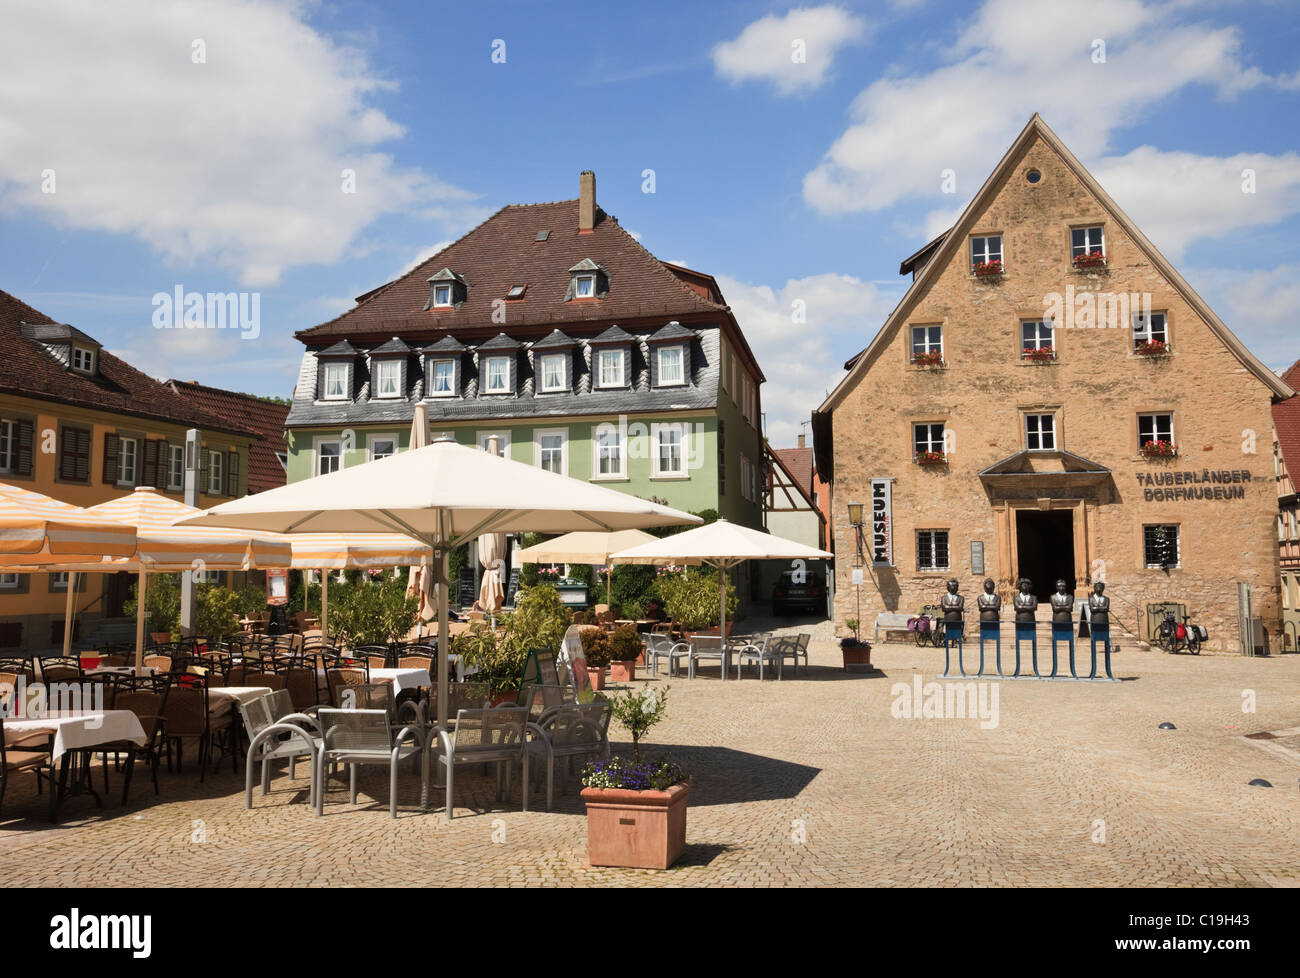 Weikersheim, Baden-Wurttemberg, Germany. Outdoor cafe and Tauberland Museum in medieval town square on the Romantic - Stock Image